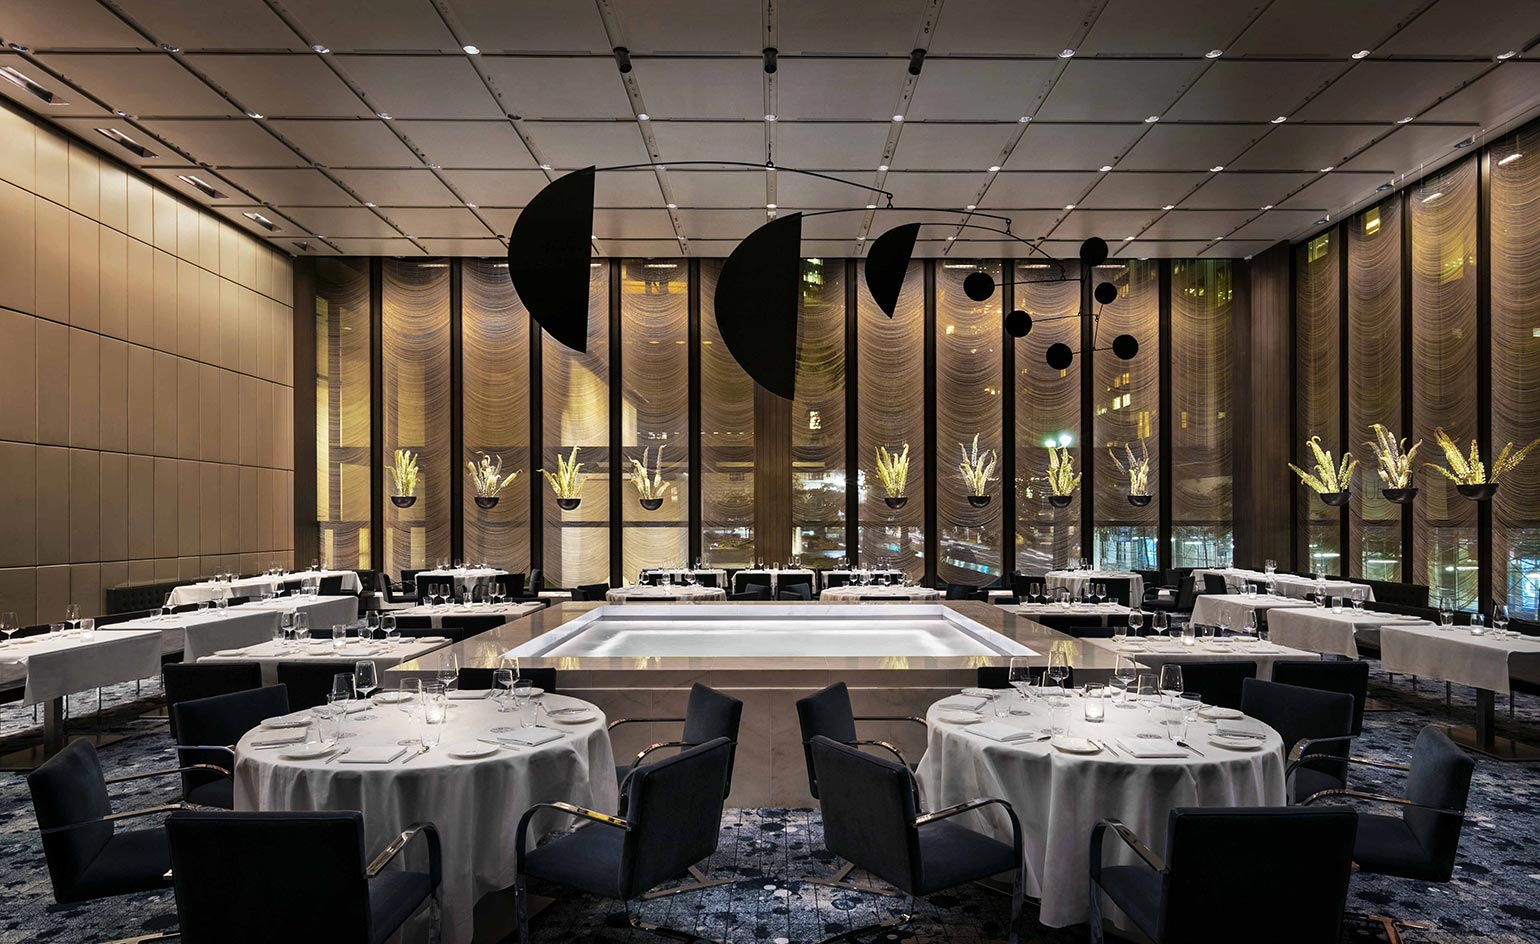 Restaurant A New York The Pool Restaurant Review New York Usa Wallpaper